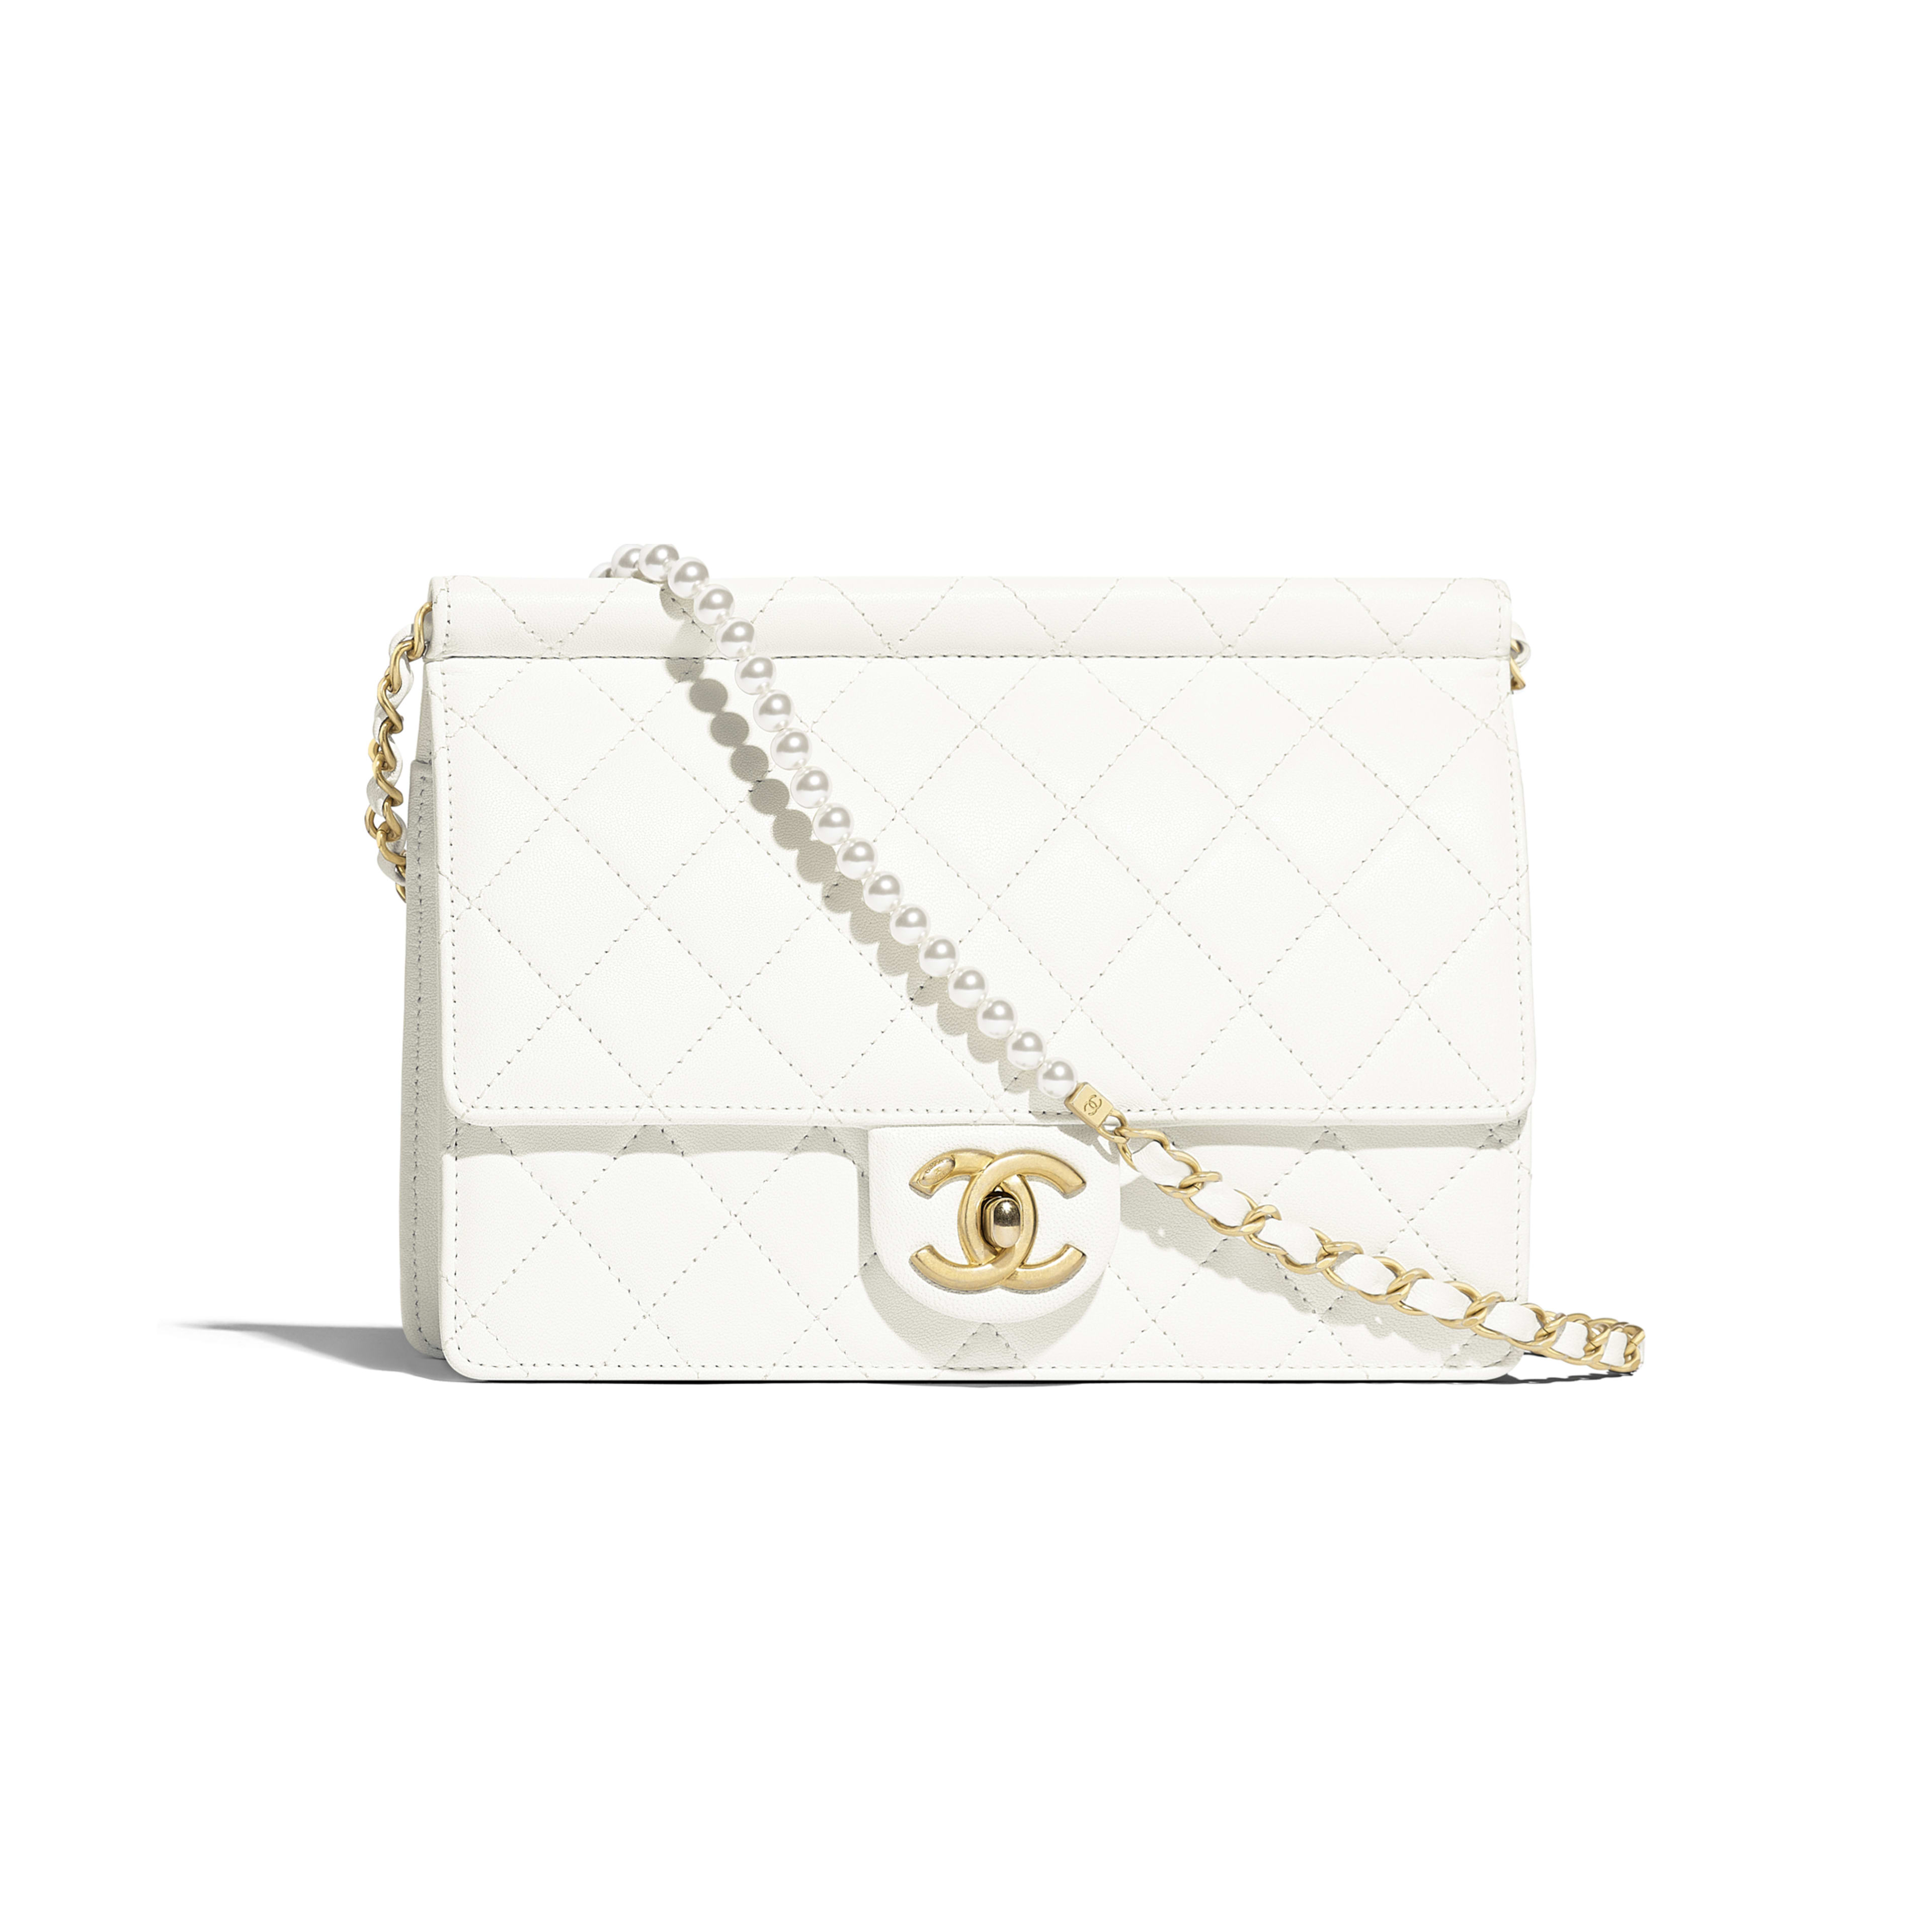 What is the price of a Chanel bag in 2019? – Haya Glamazon